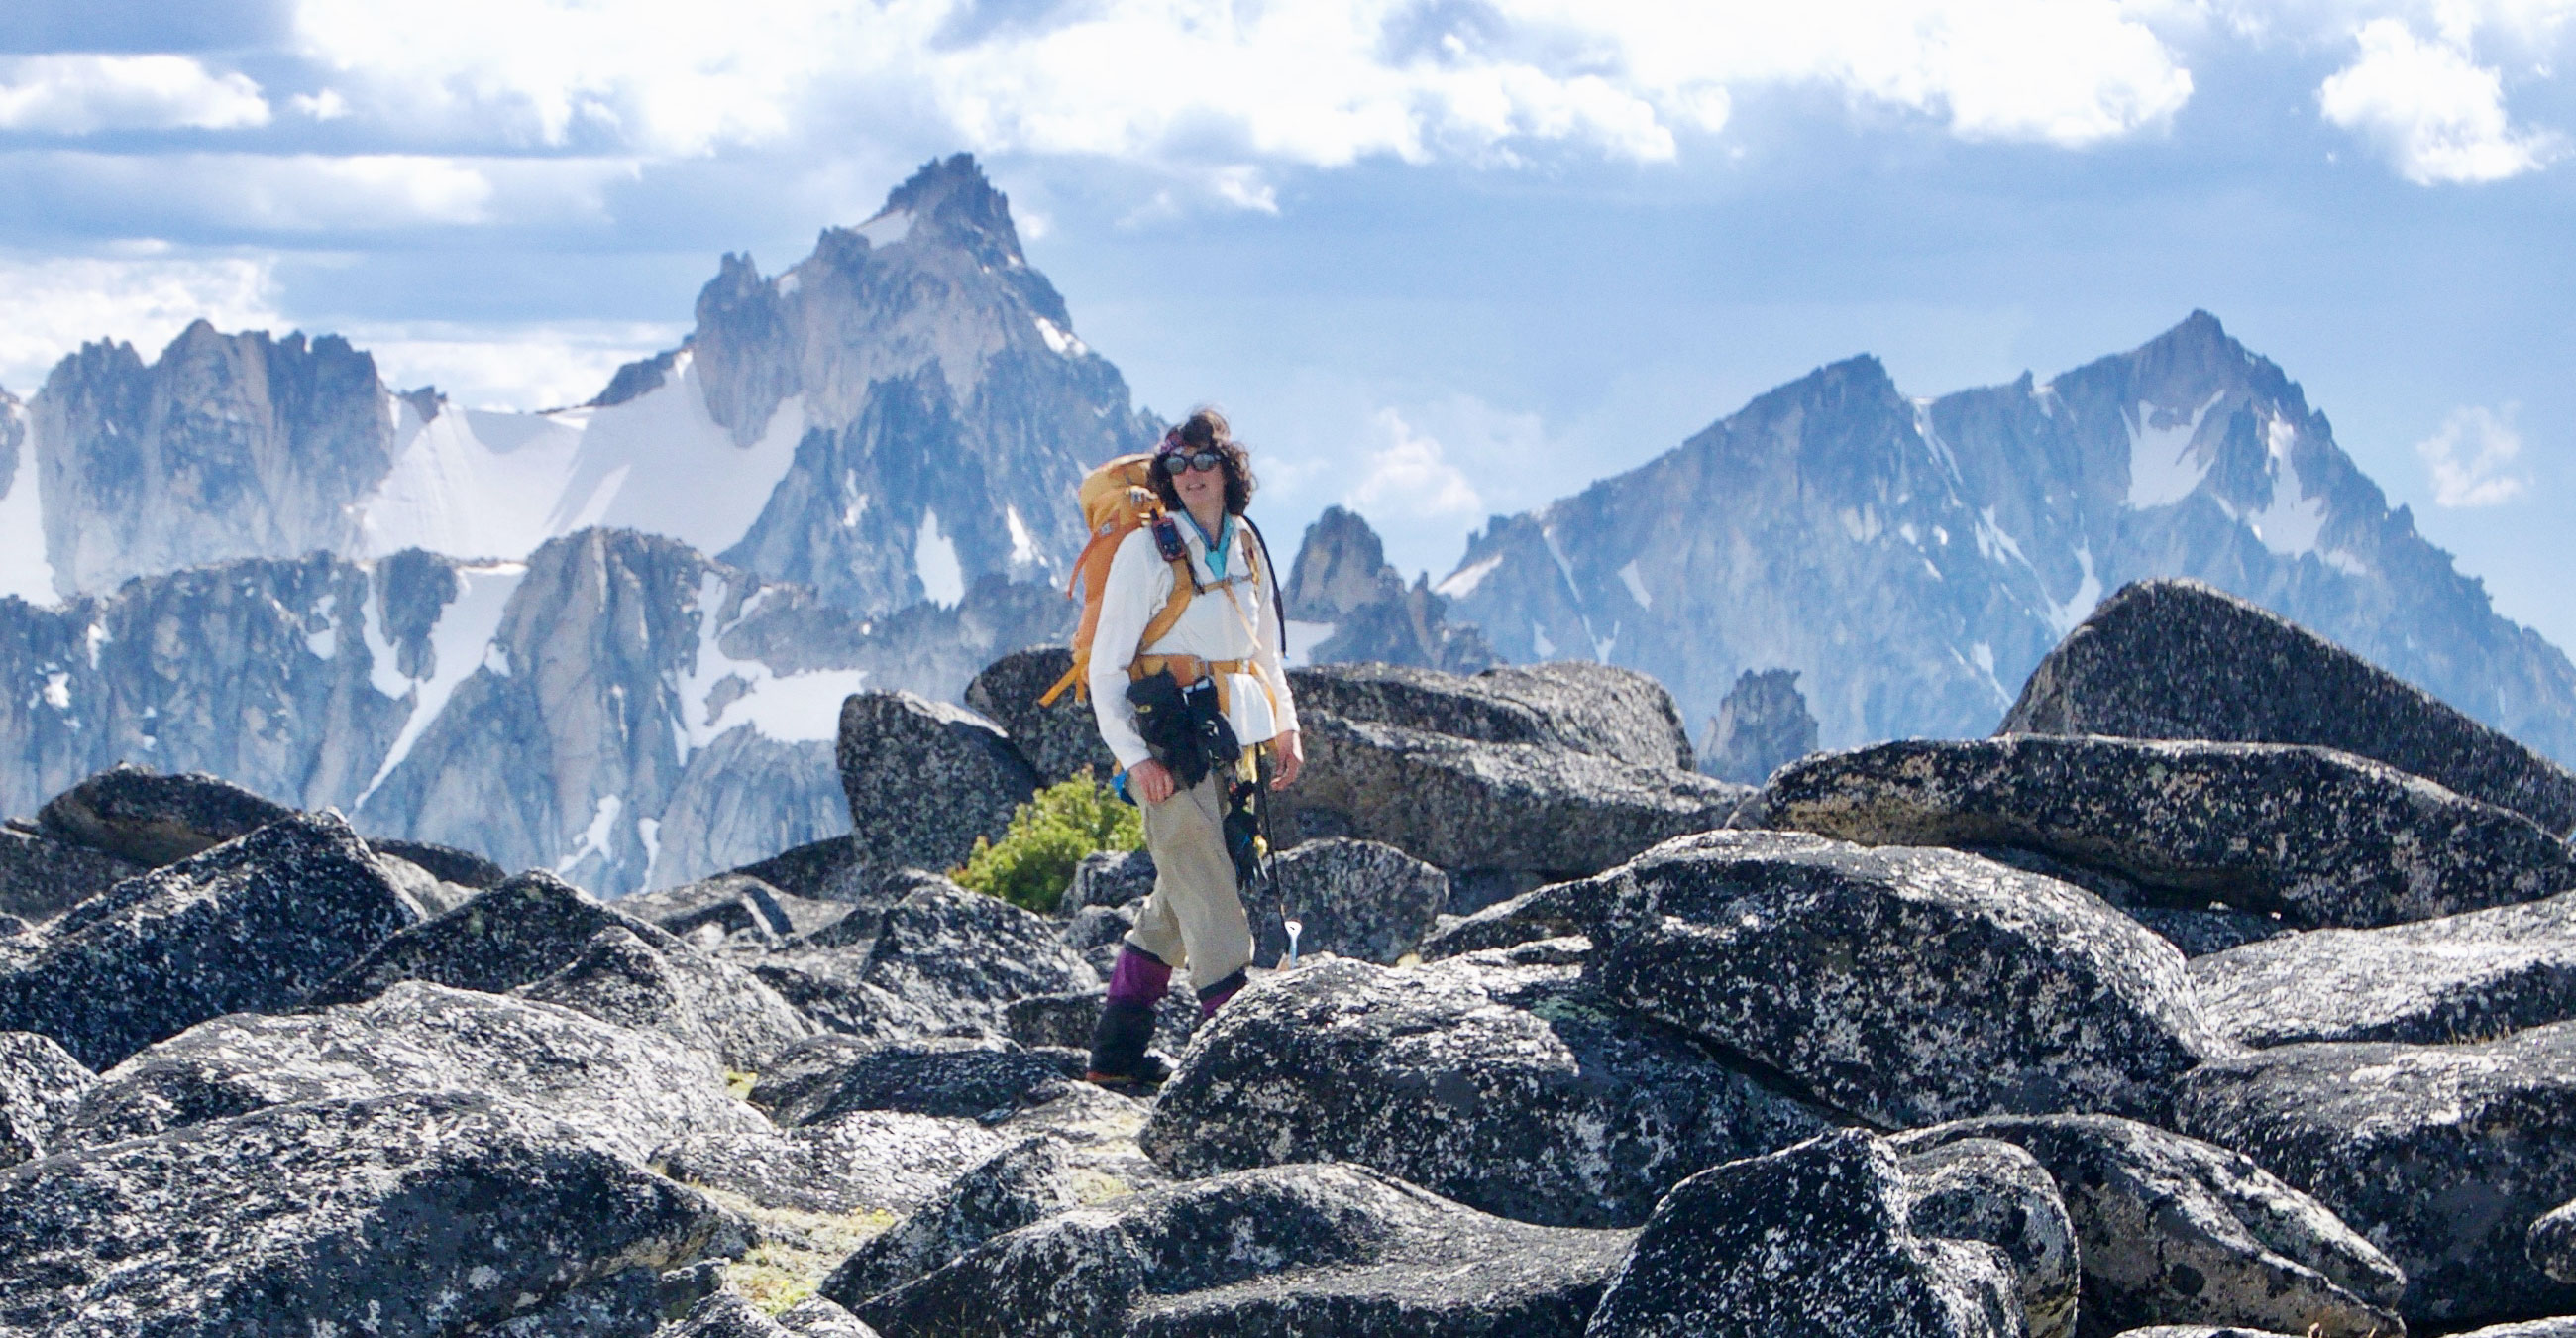 Ann Nelson in hiking gear traversing some boulders at the top of a mountain with snowy peaks in the background.